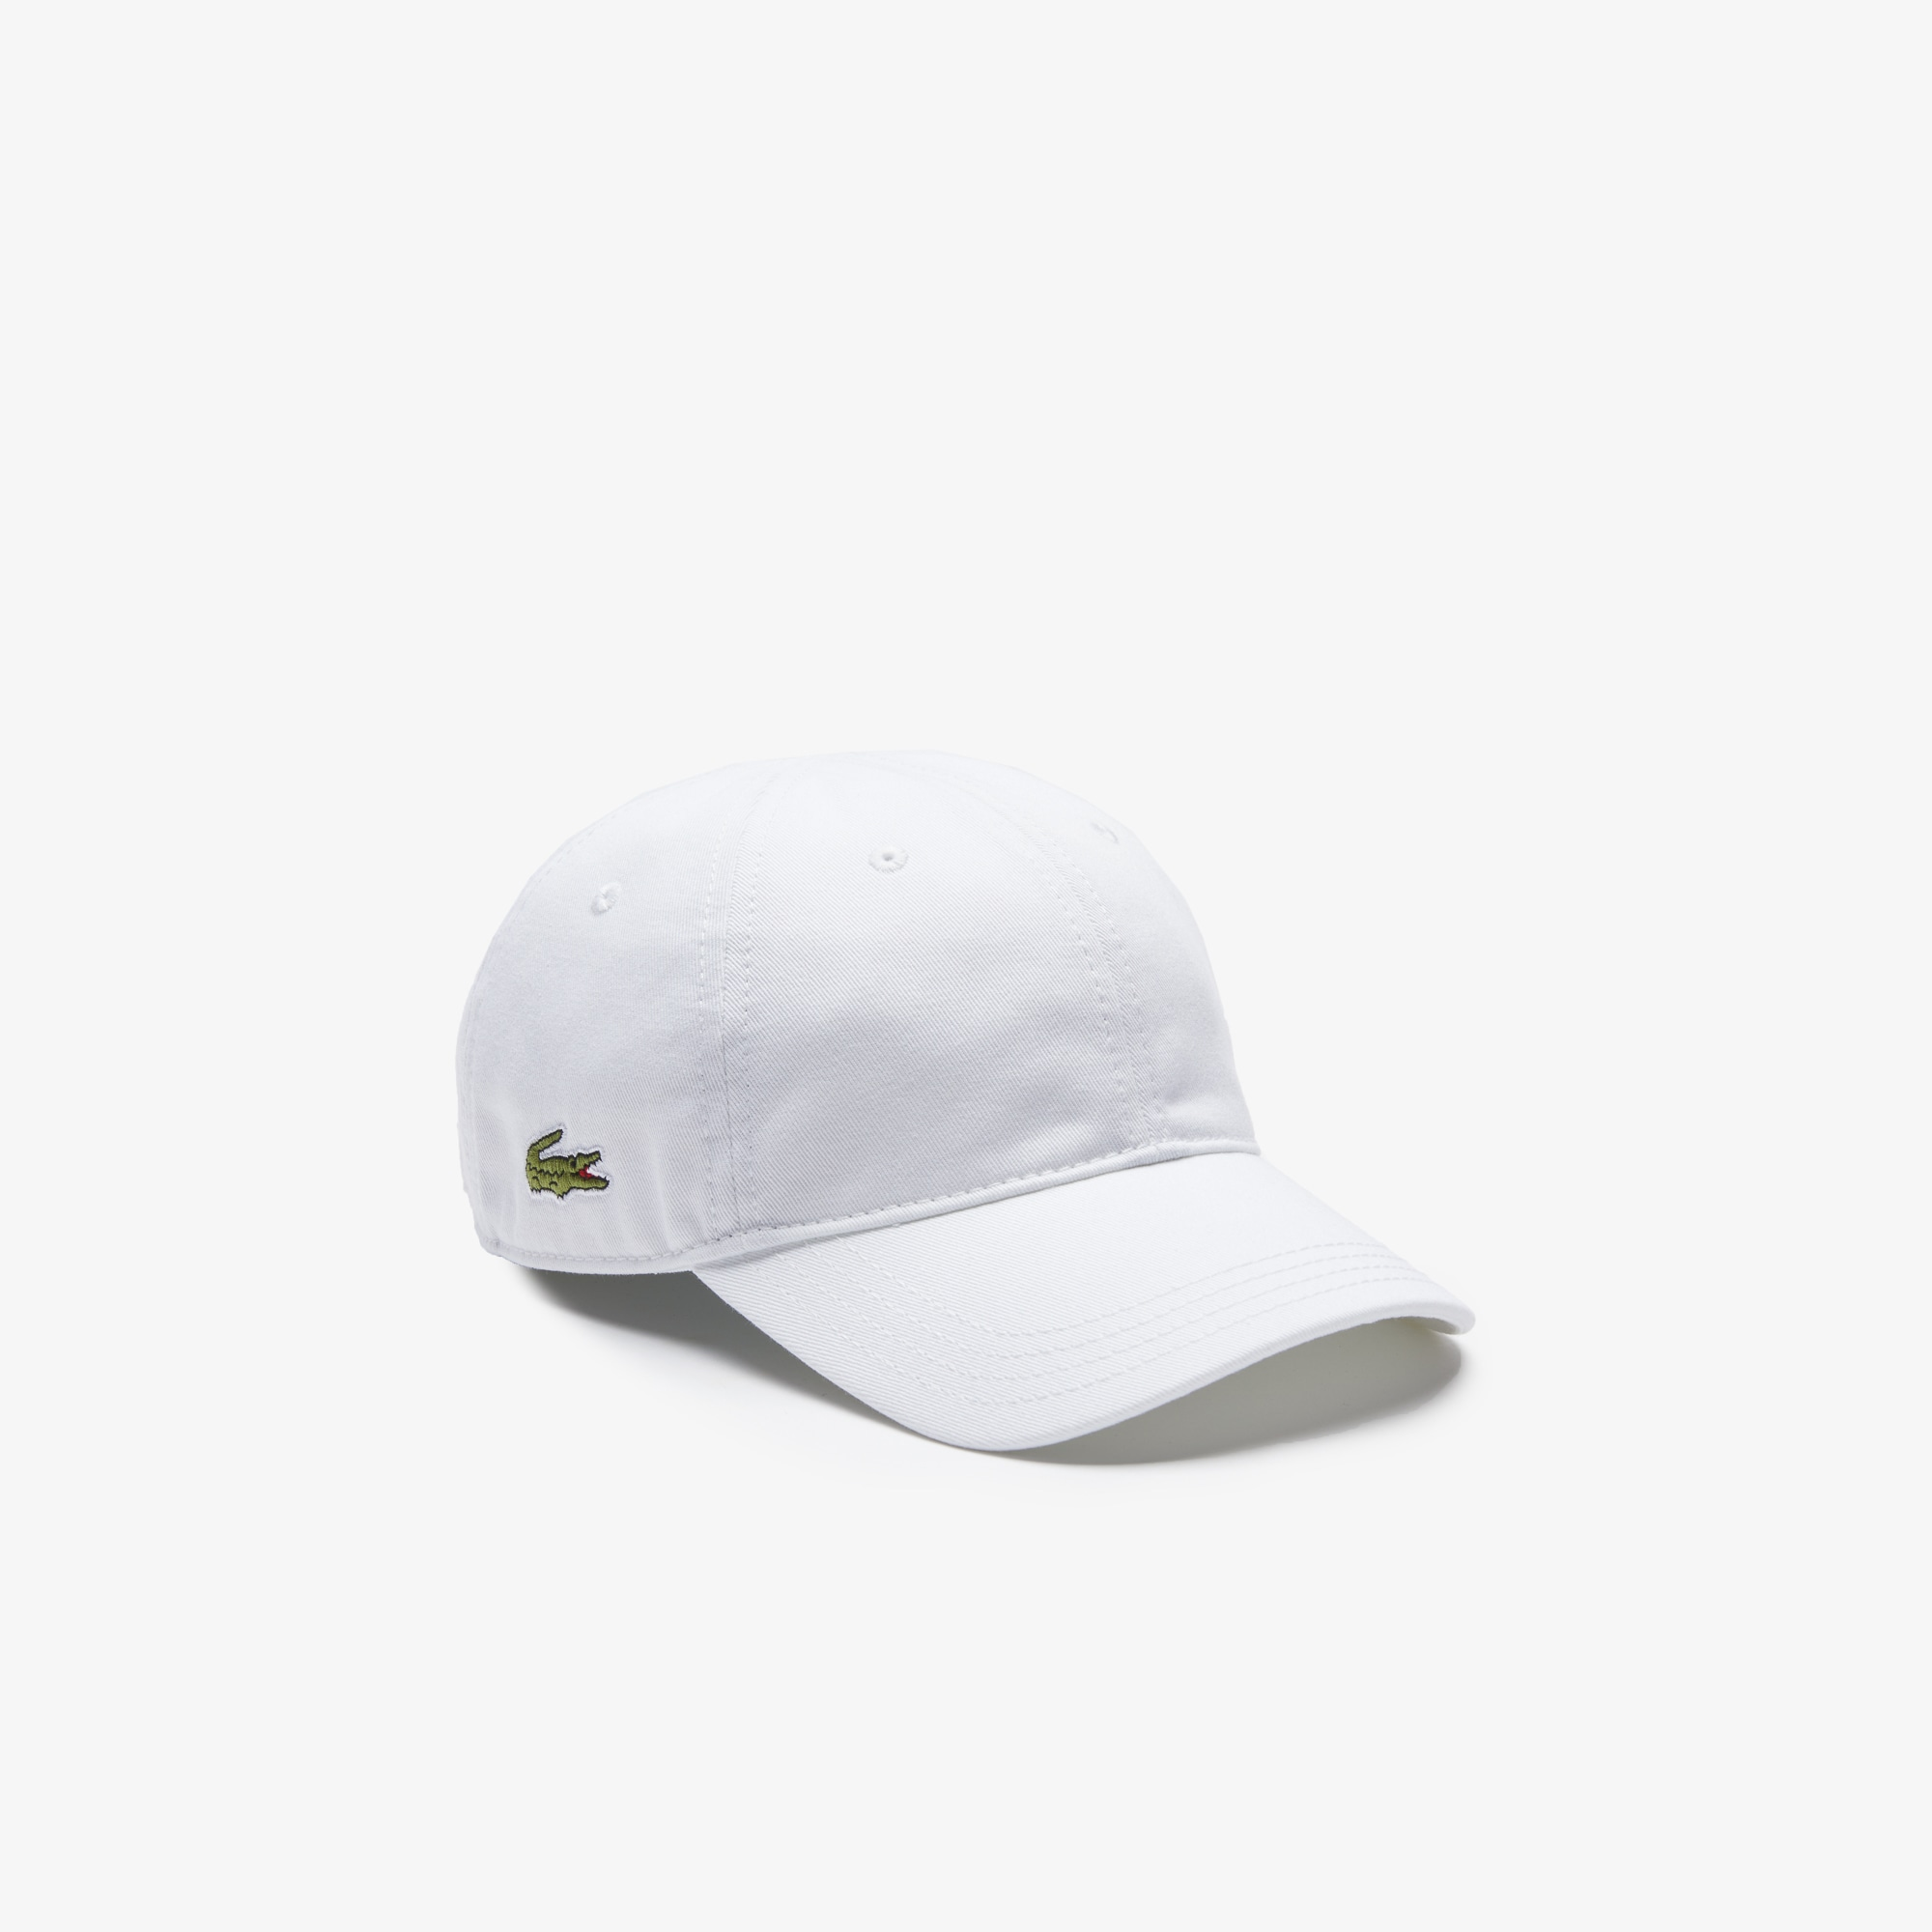 Lacoste Kids Caps   Hats 111091f9600